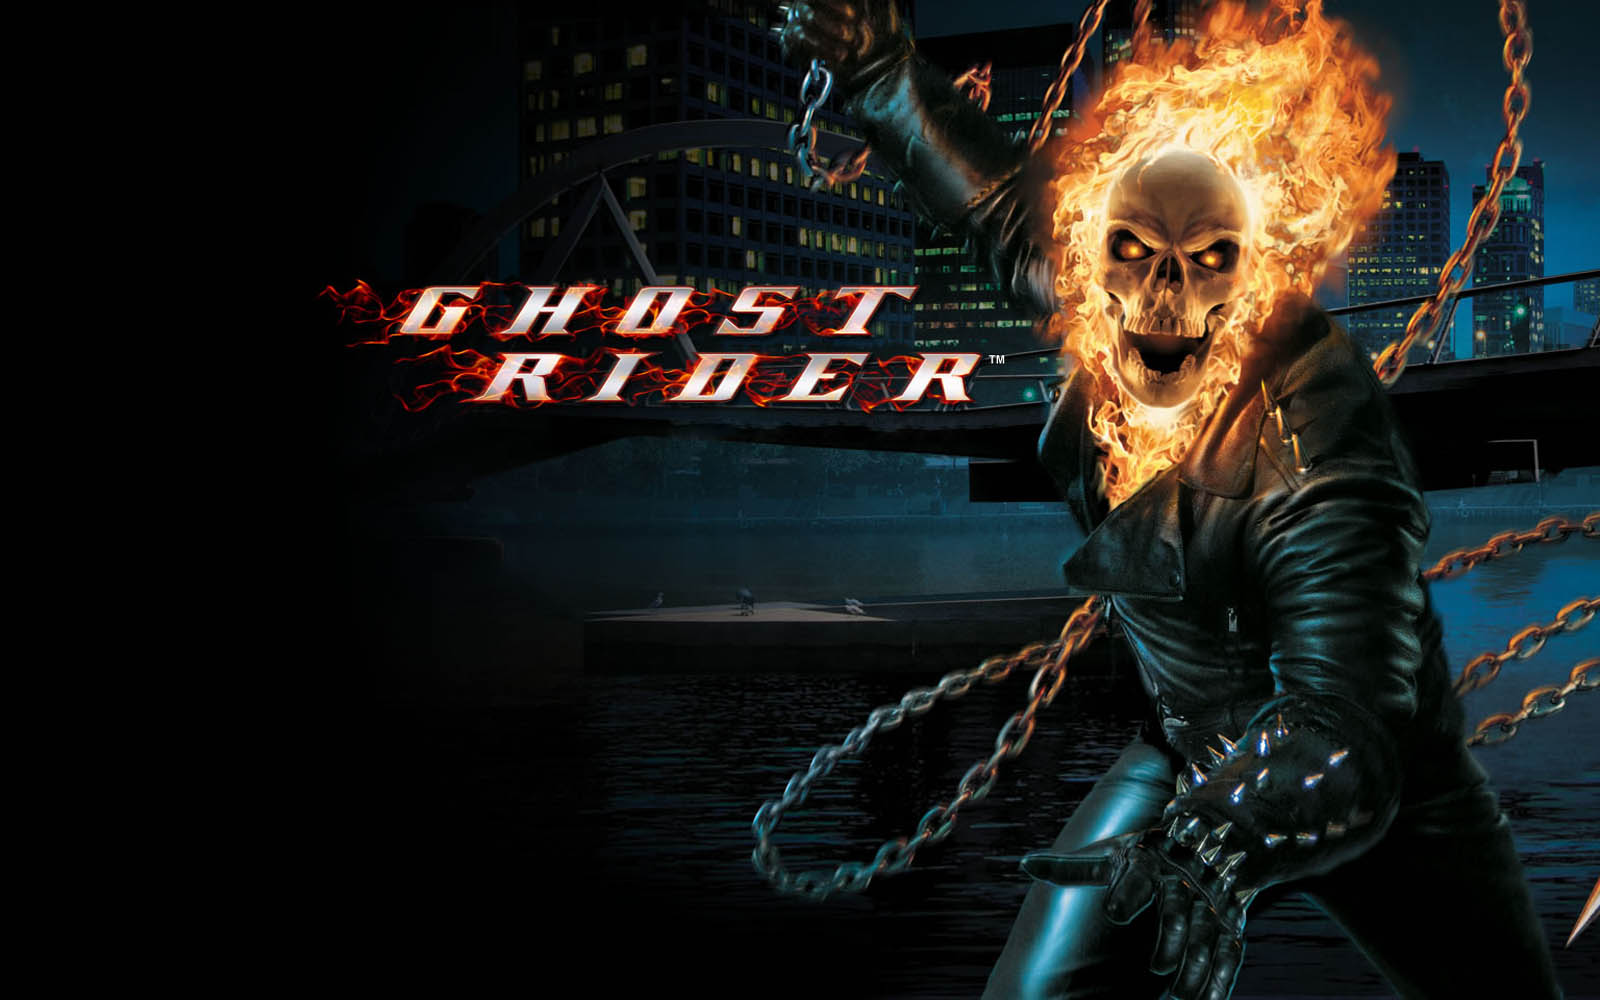 Tag Ghost Rider Wallpapers Images Photos Pictures and Backgrounds 1600x1000